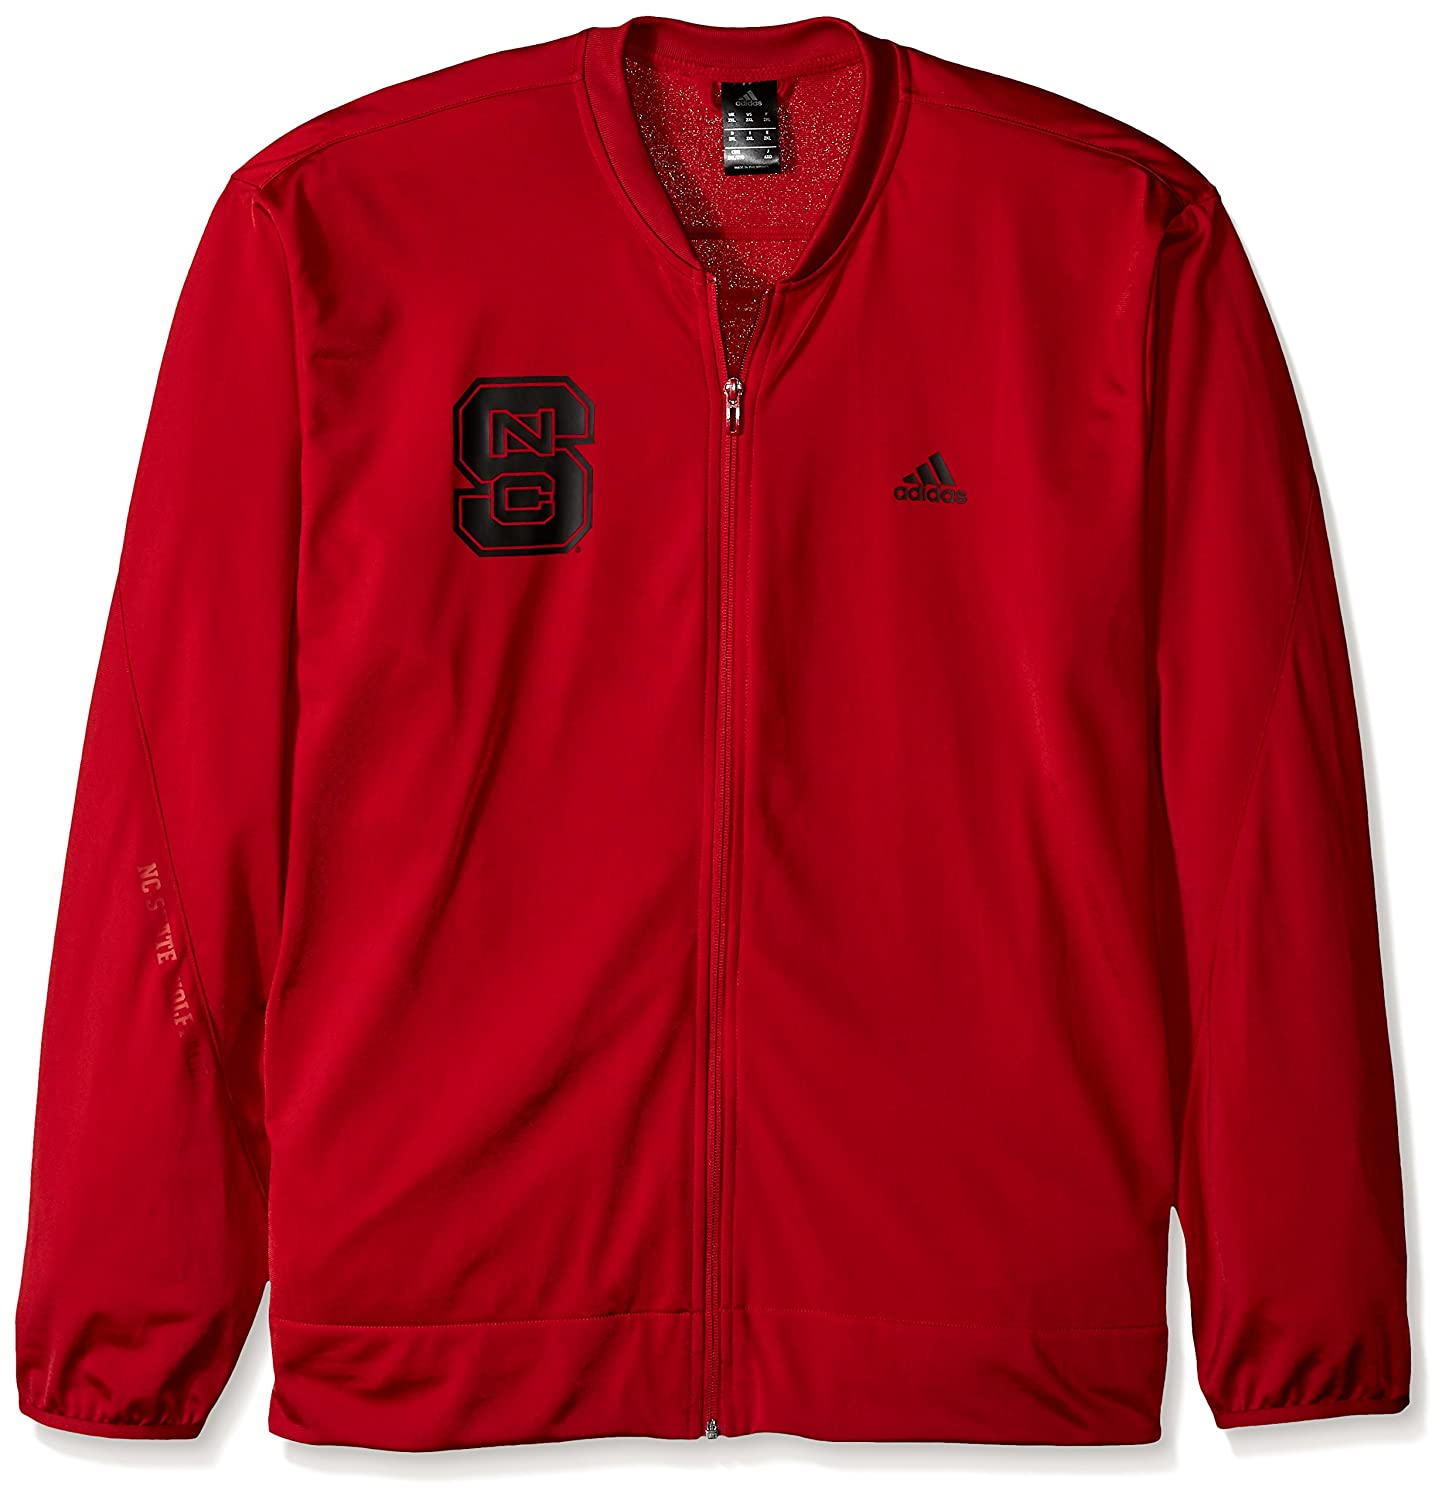 Power Red 2XLarge NCAA Mens On Court Warmup Jacket